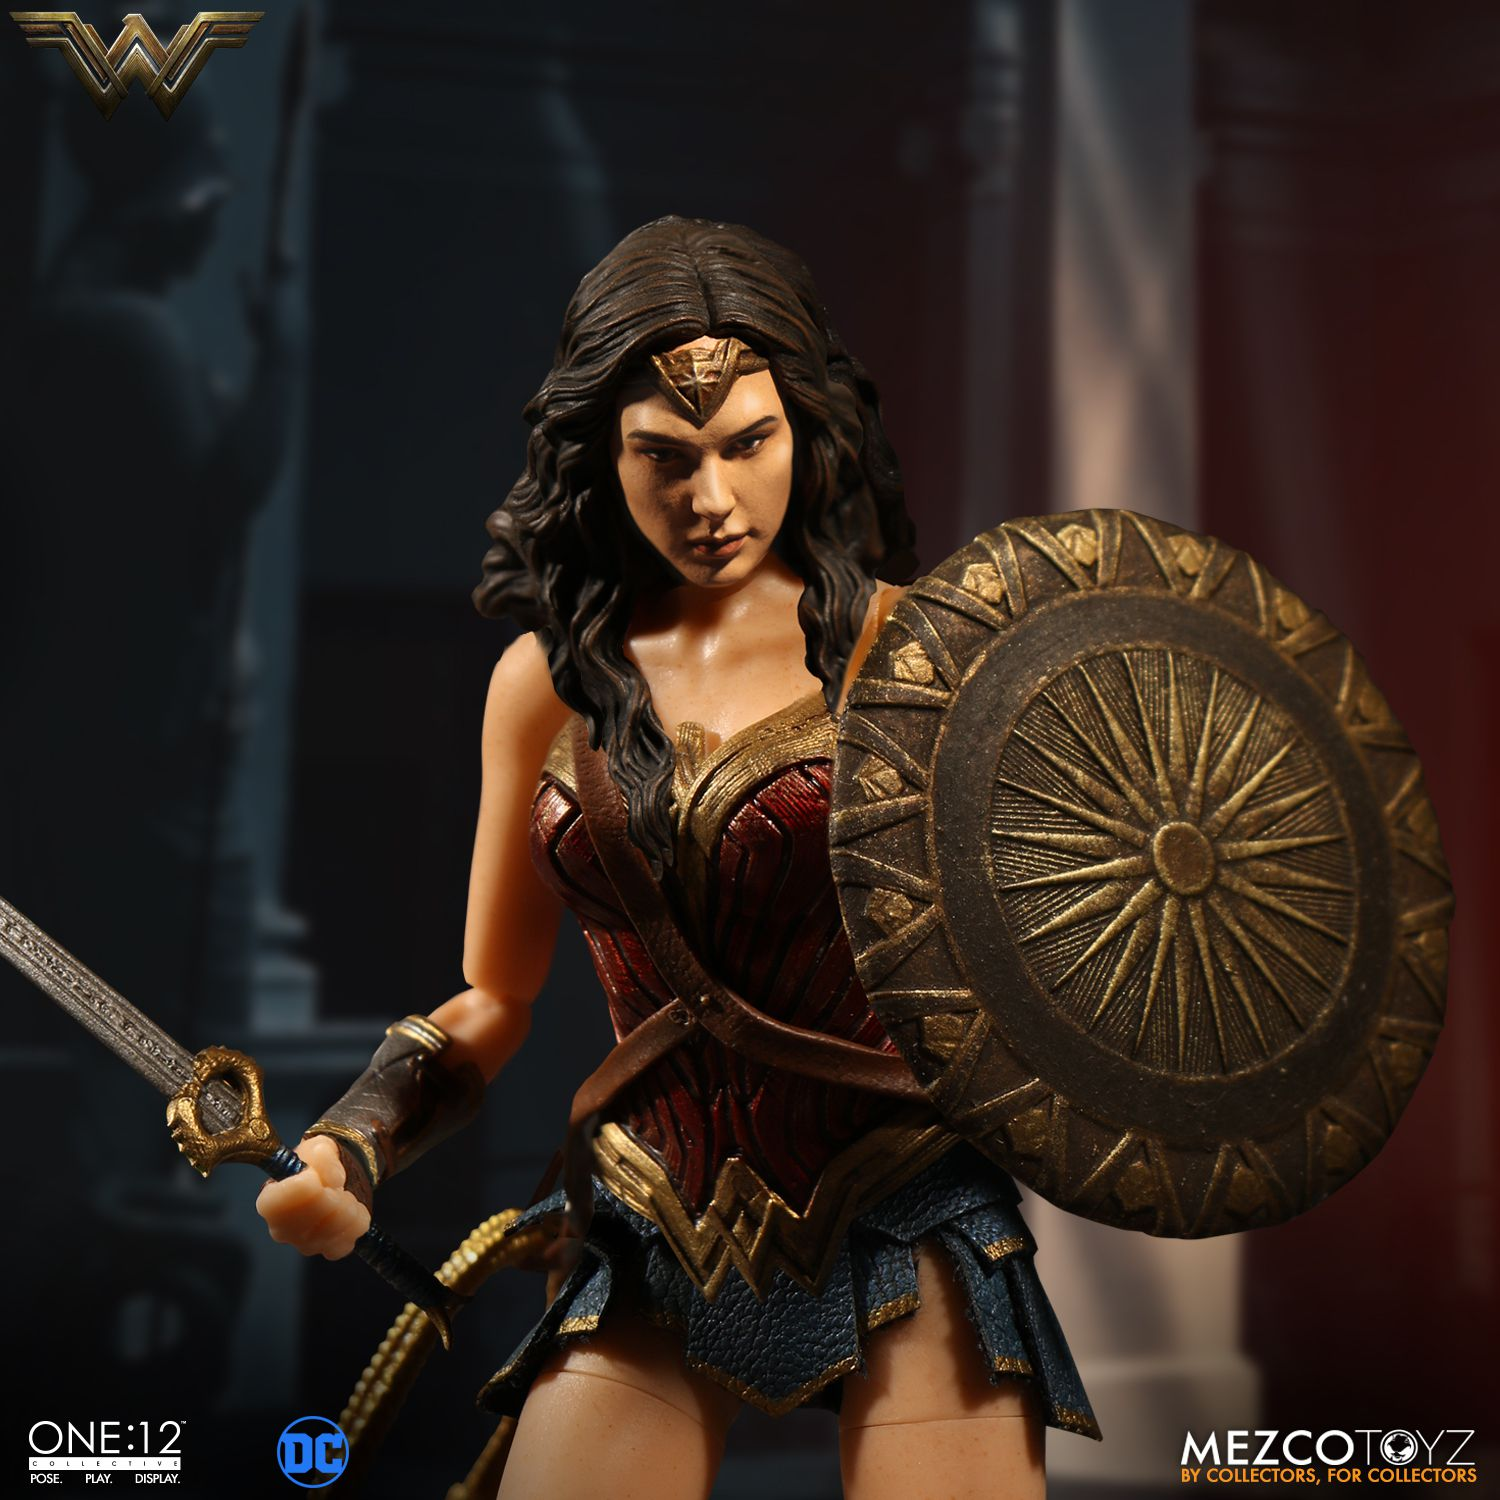 Wonder-Woman-One12-Mezco-003